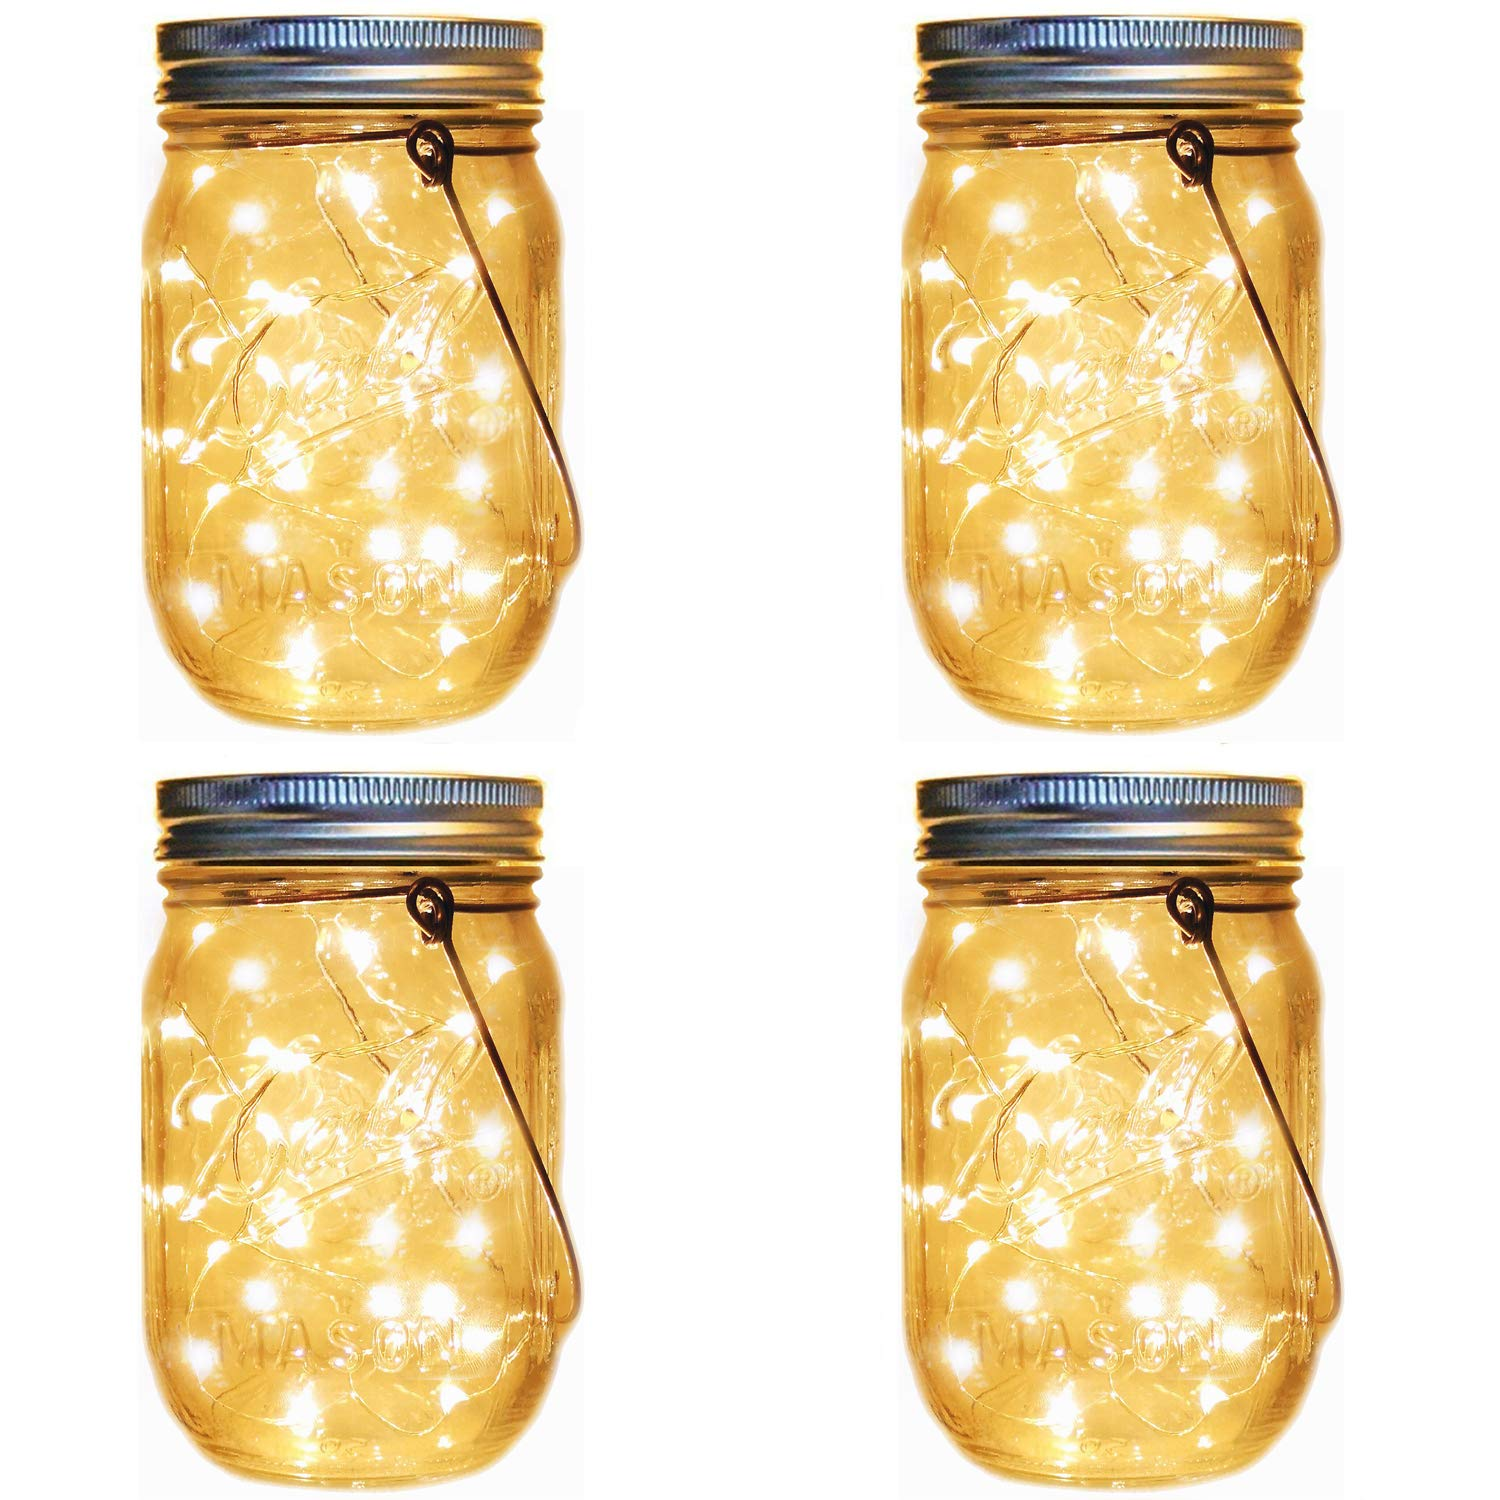 Solar Lanterns Mason Jar Hanging Lights,4 Pack 30 LED Lights String Fairy Firefly Starry Jar Lights (Mason Jars/Hangers Included),for Patio Garden Wedding Table Mason Jar Decor Solar Lantern Lights